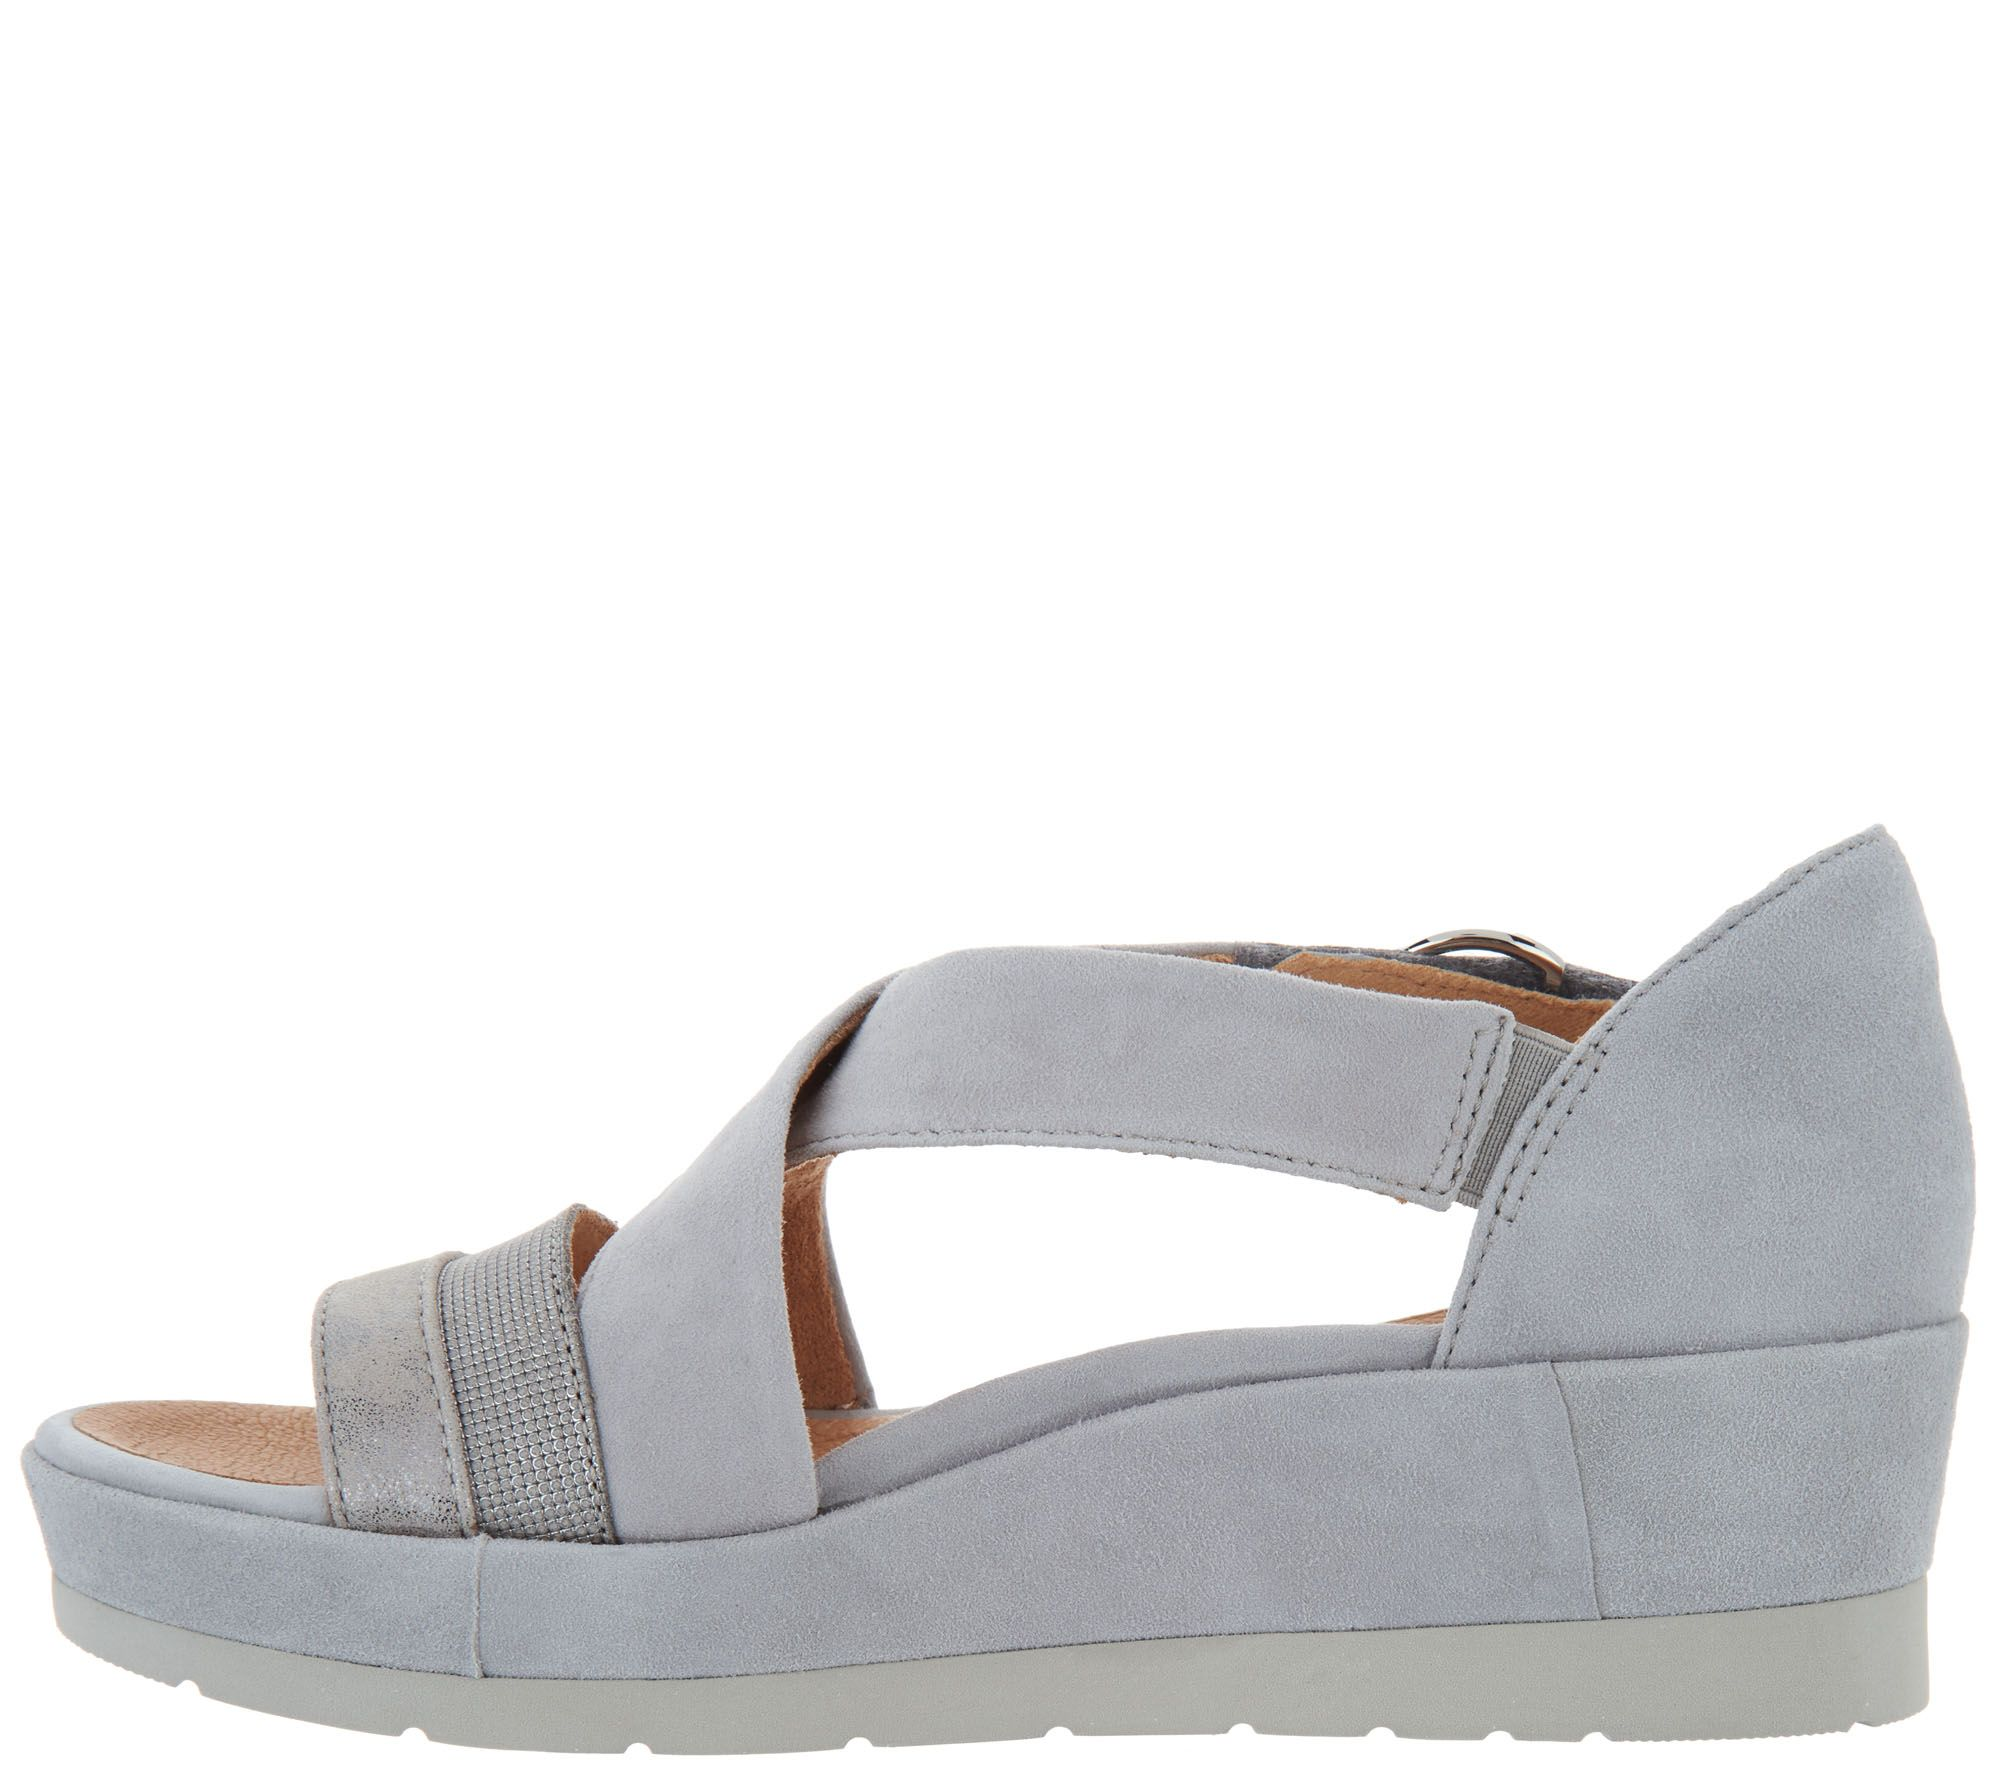 c29039f45d Earth Leather and Suede Cross Strap Wedges - Hibiscus - Page 1 — QVC.com